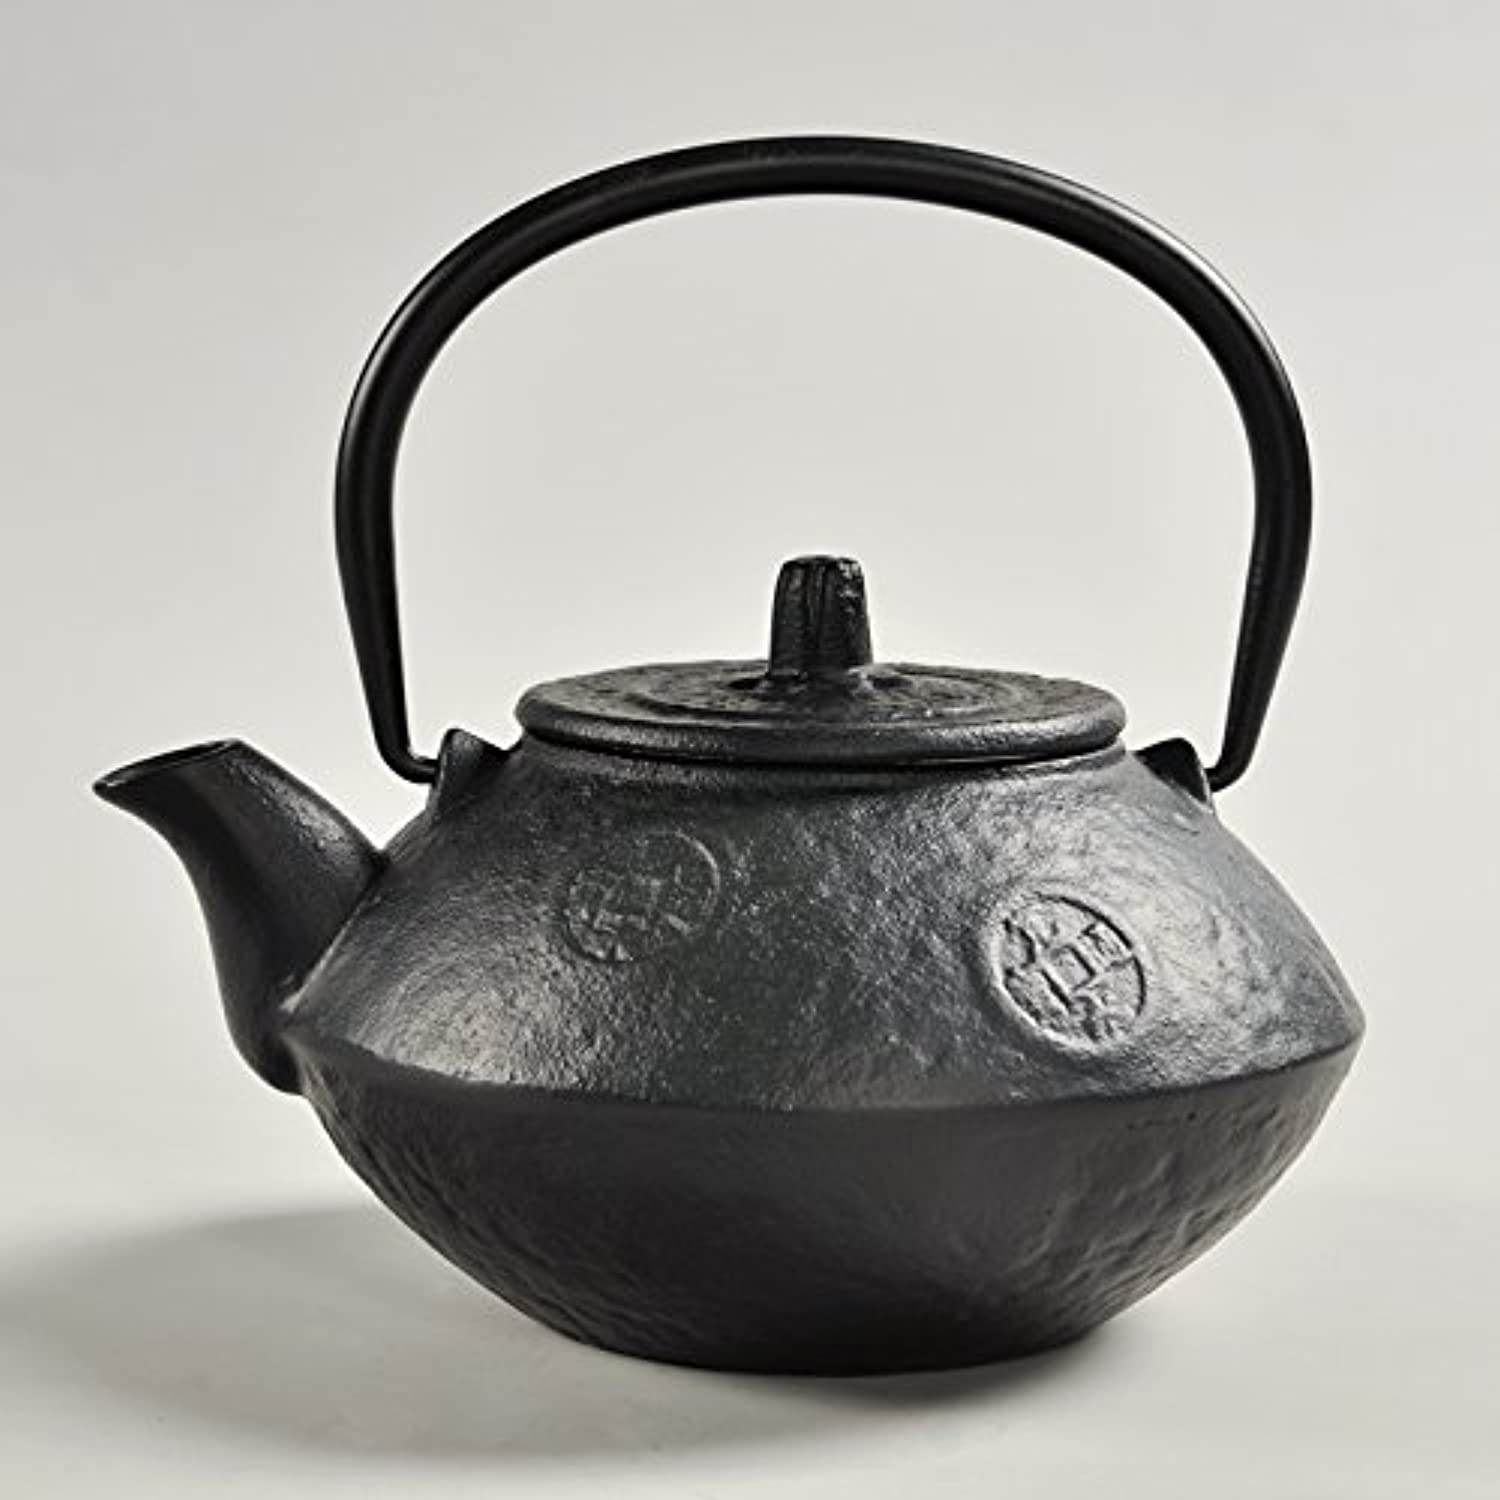 CLGFLY Handmade antique King size uncoated color Japanesestyle tea old iron pot cast iron teapot kettle,2